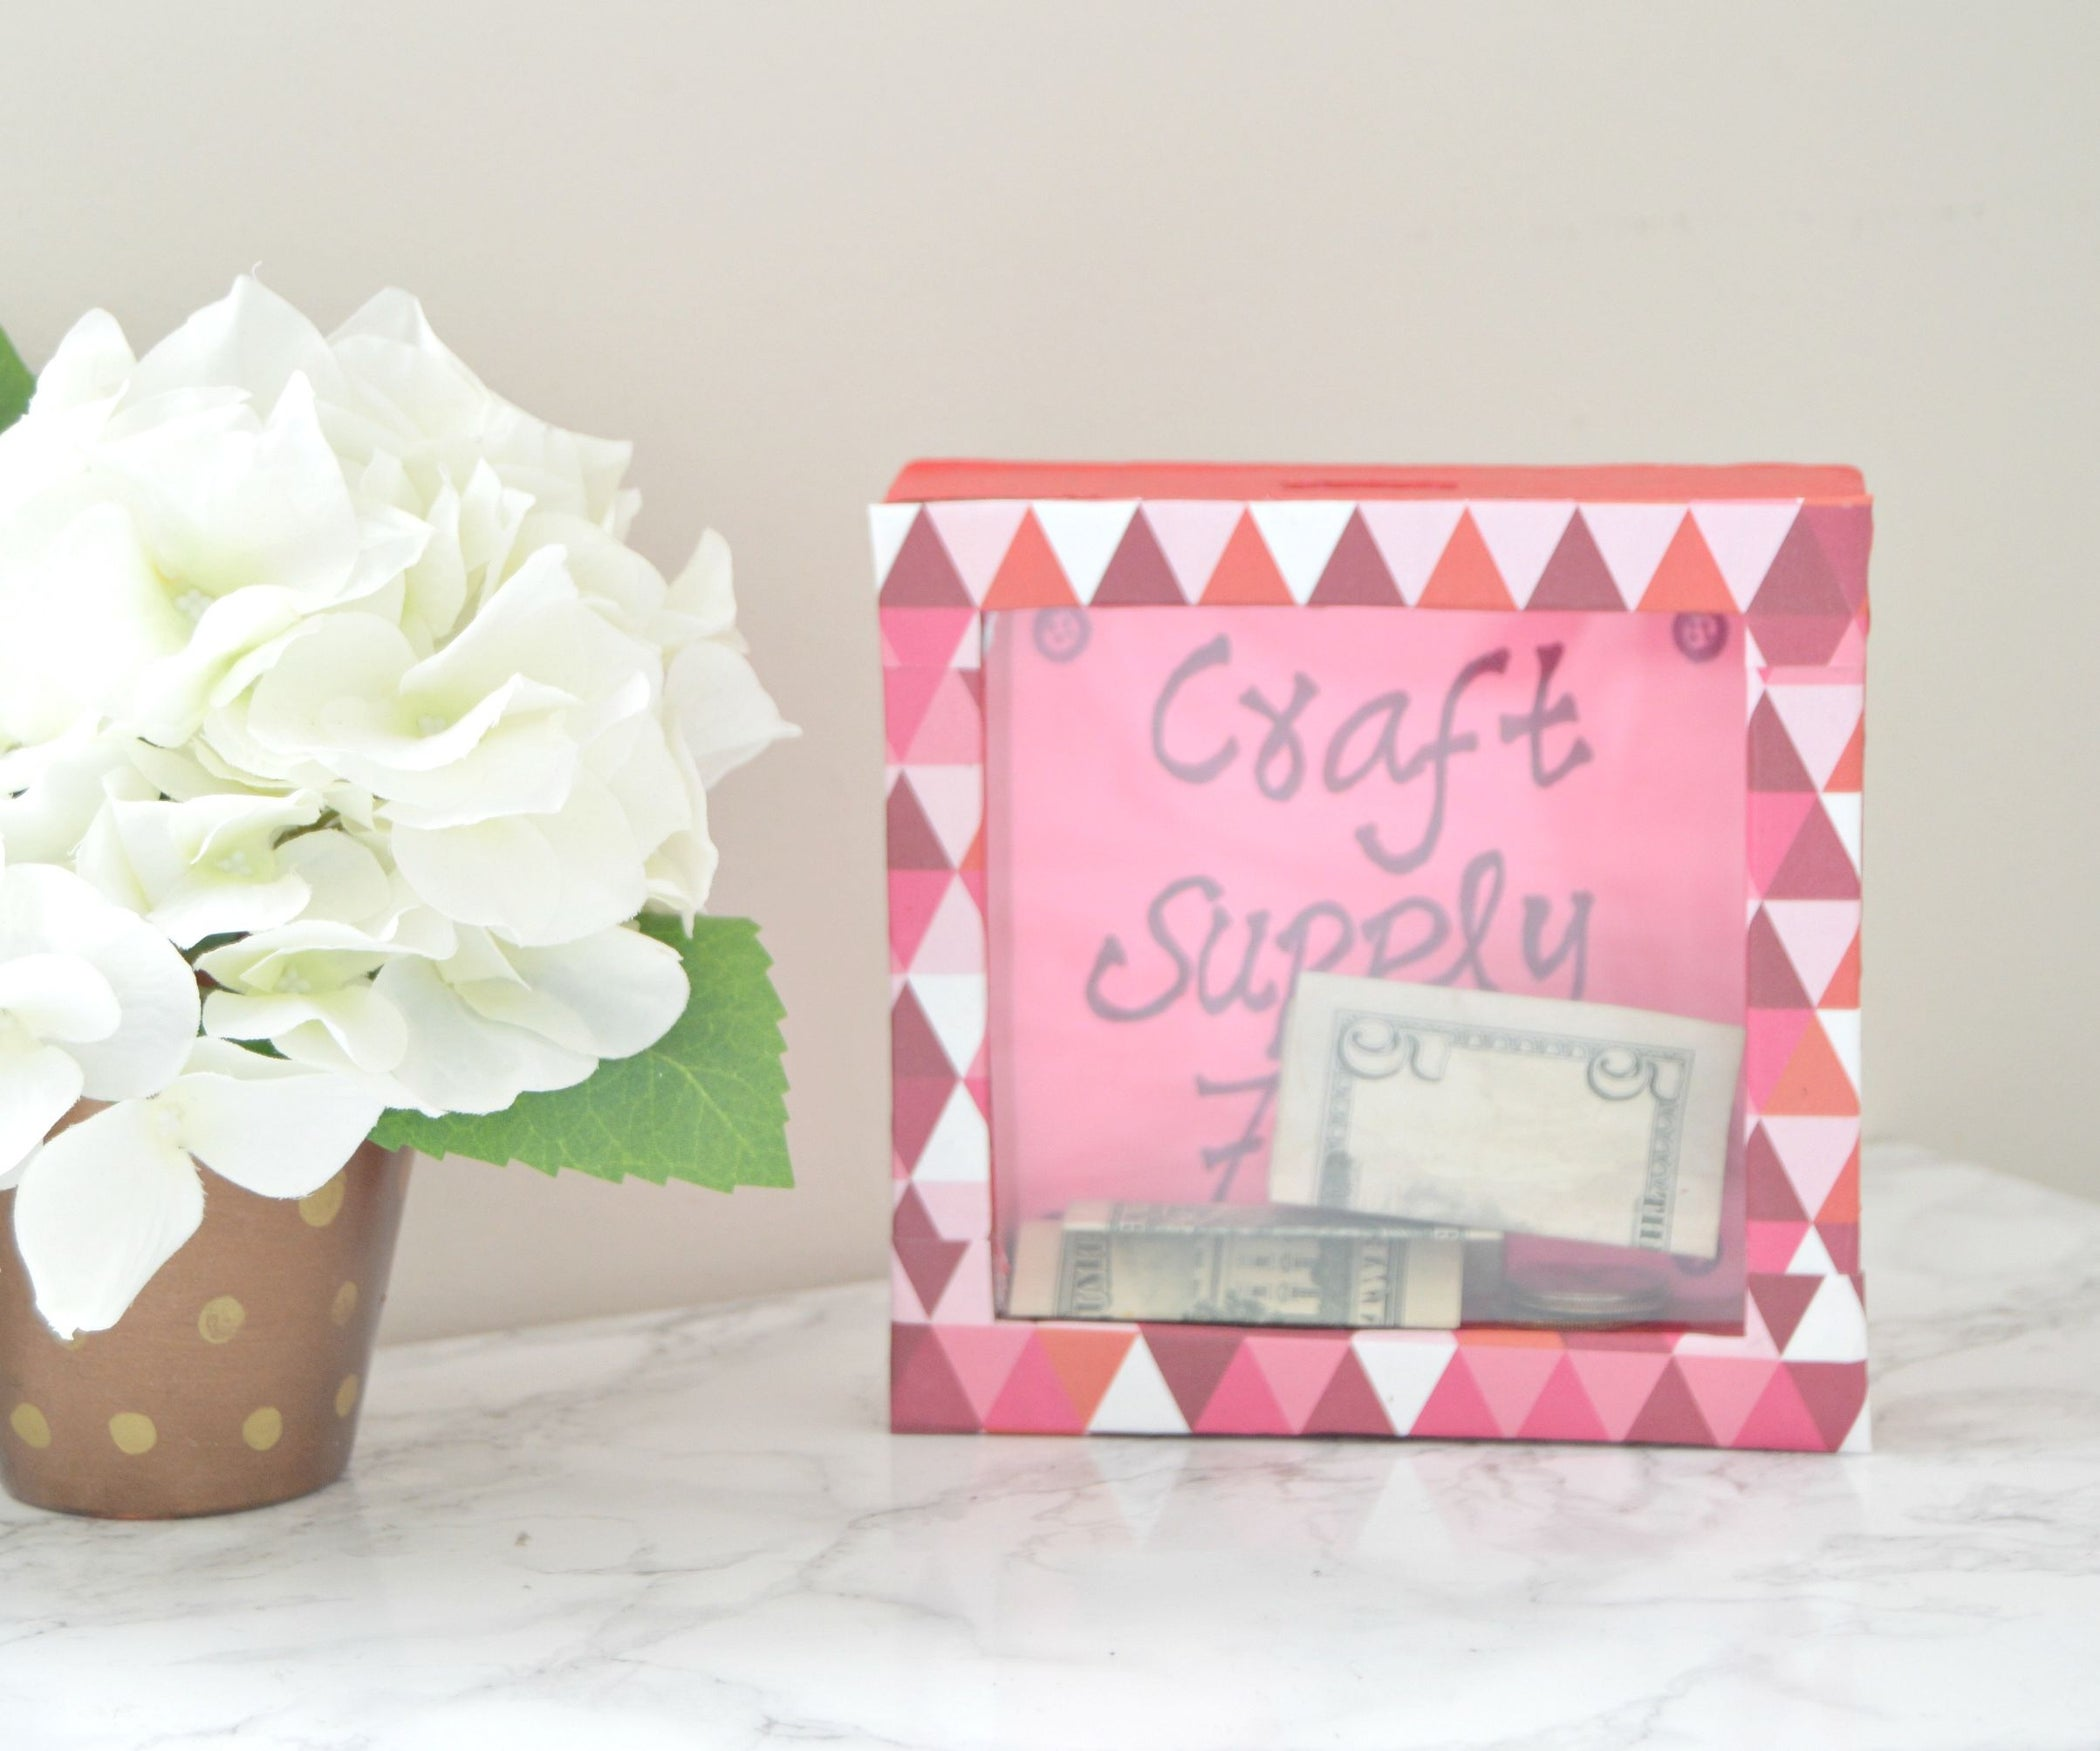 DIY Shadow Box Using Cardboard : 12 Steps (with Pictures)